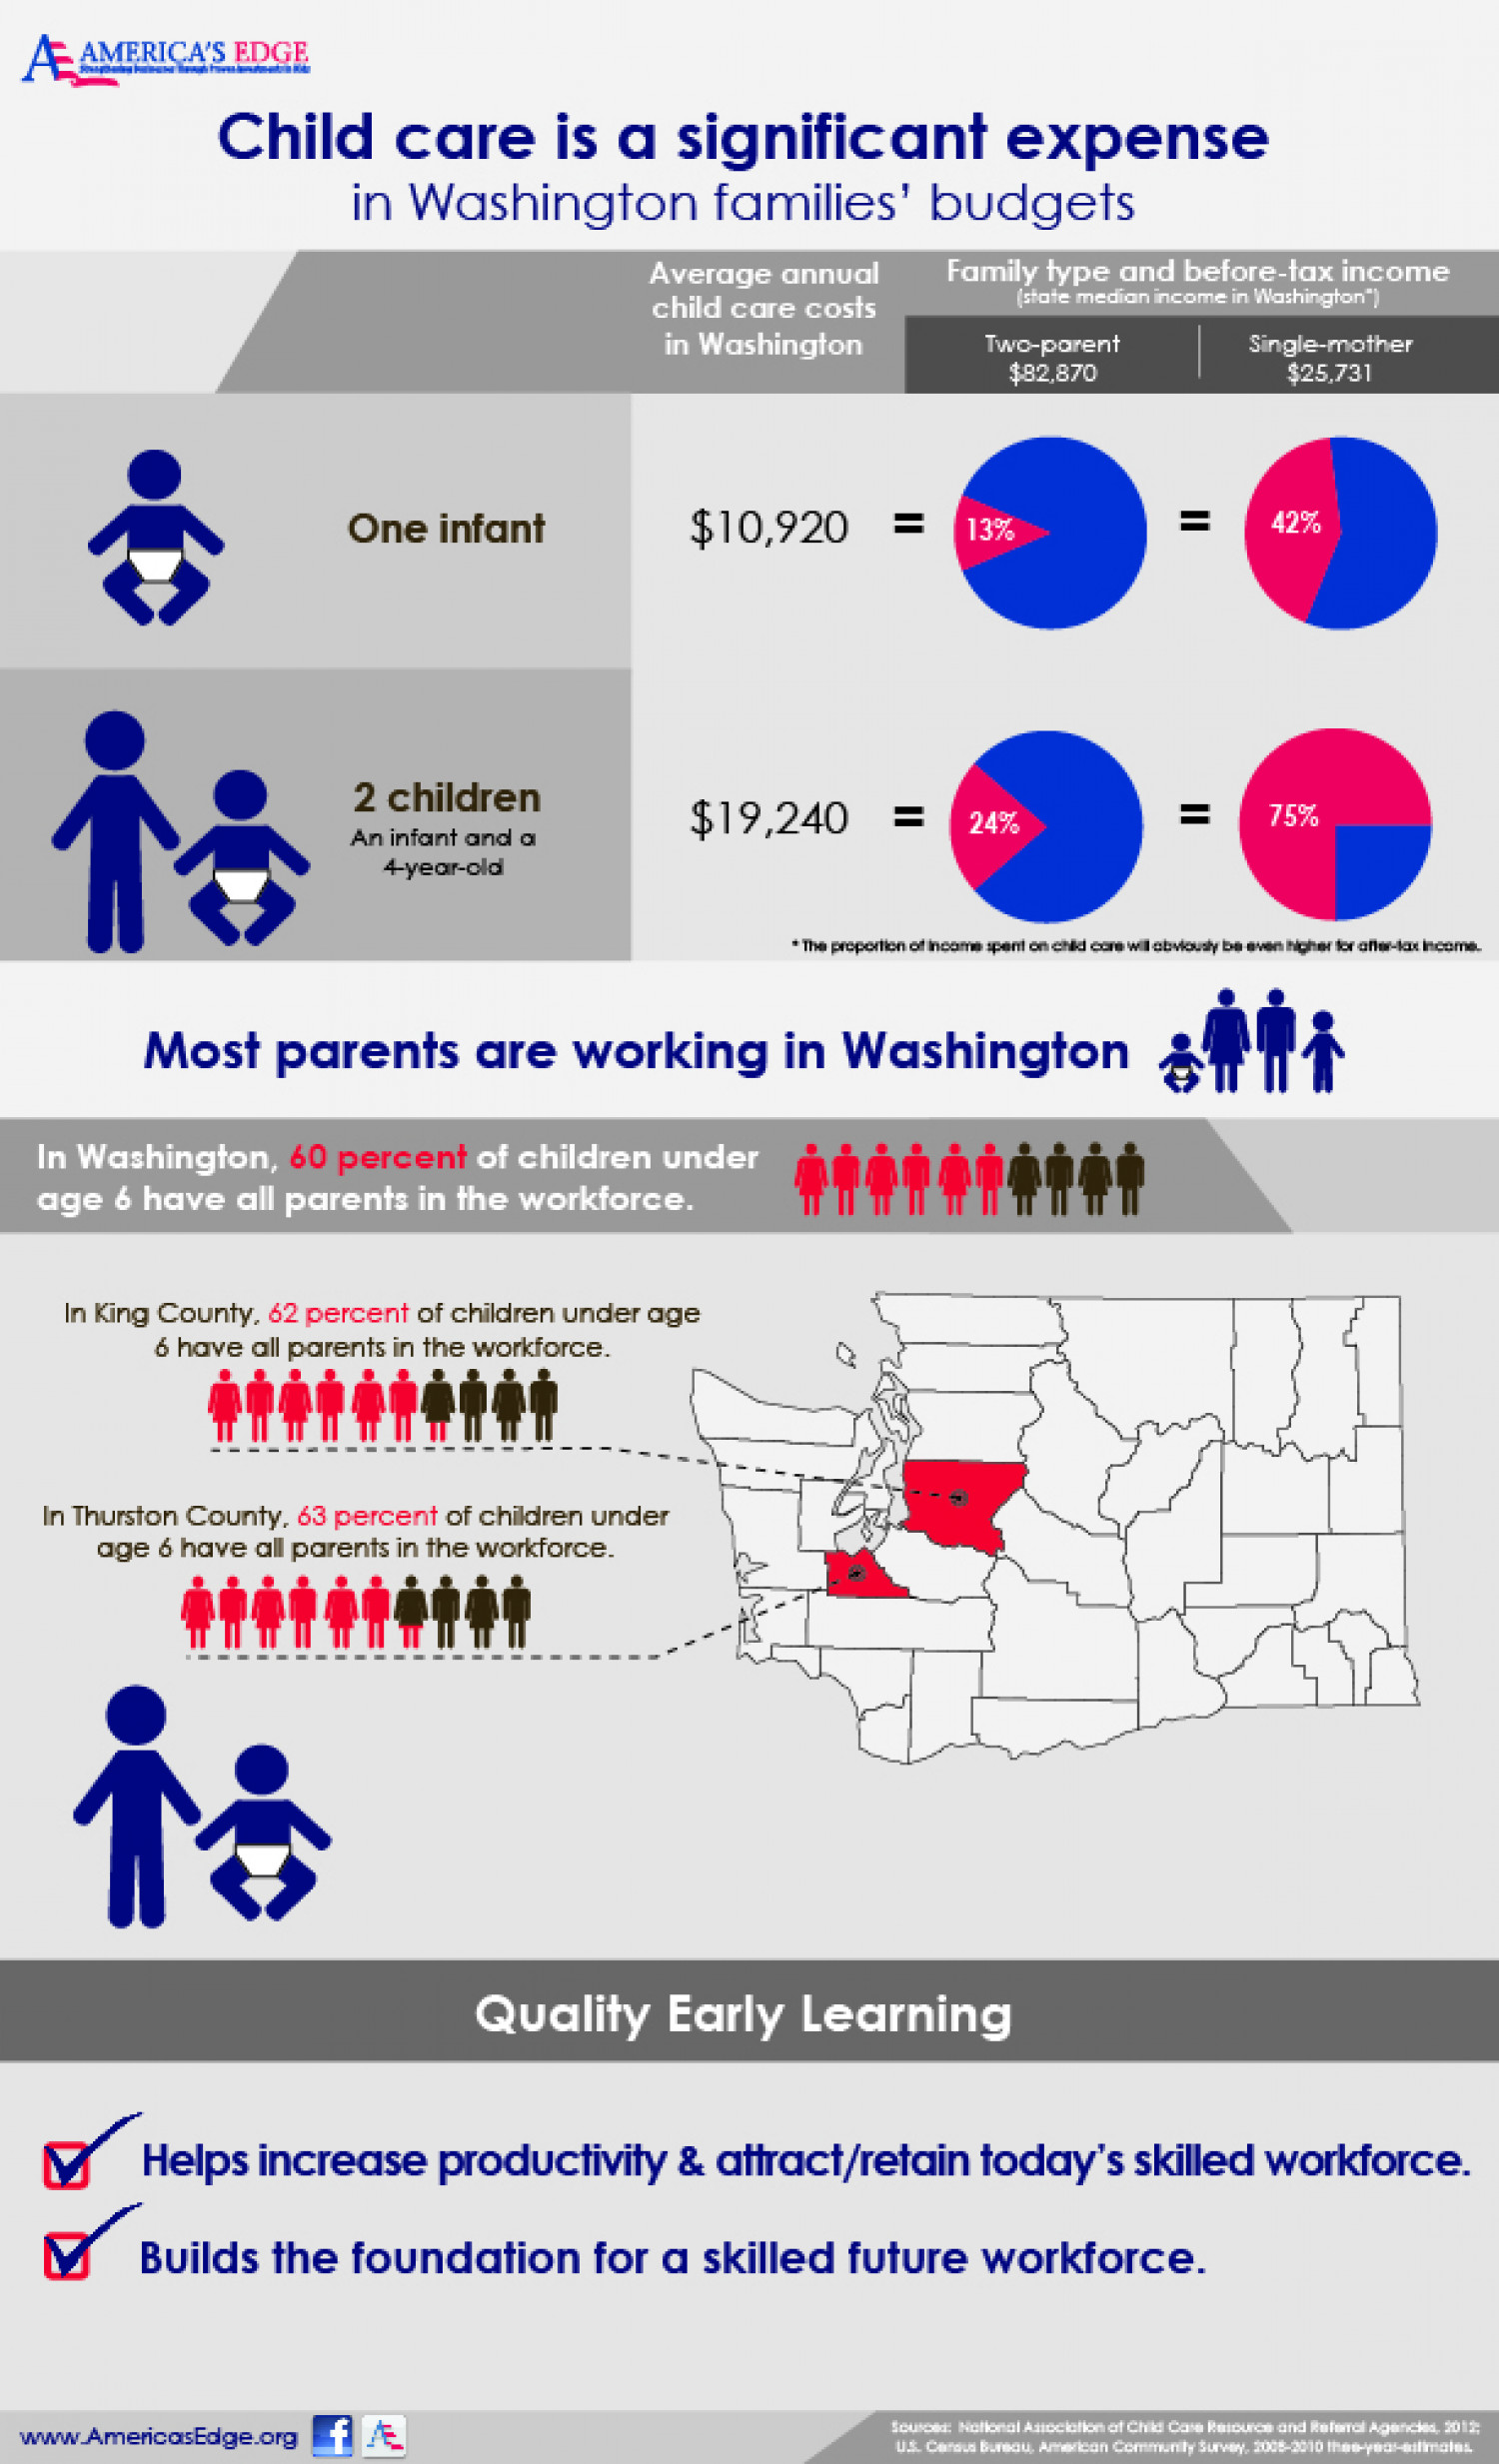 Child Care is a Significant Expense in Washington Families' Budgets Infographic